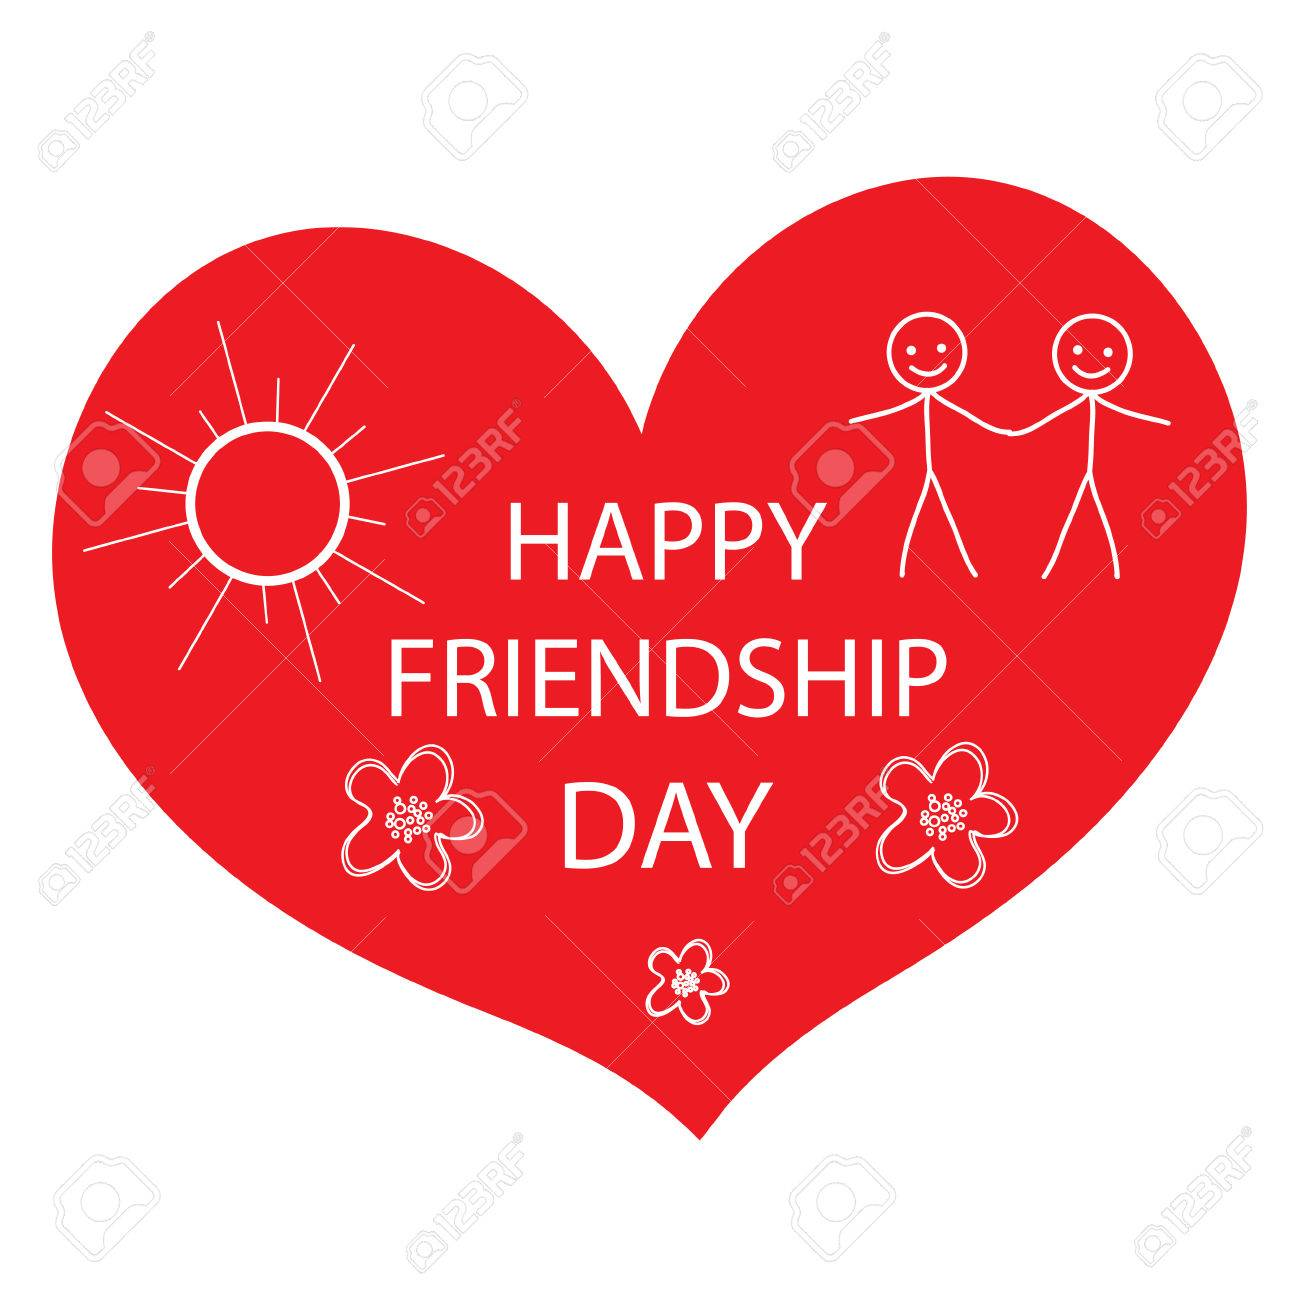 Greeting Card With A Happy Friendship Day Greeting Heart Hand